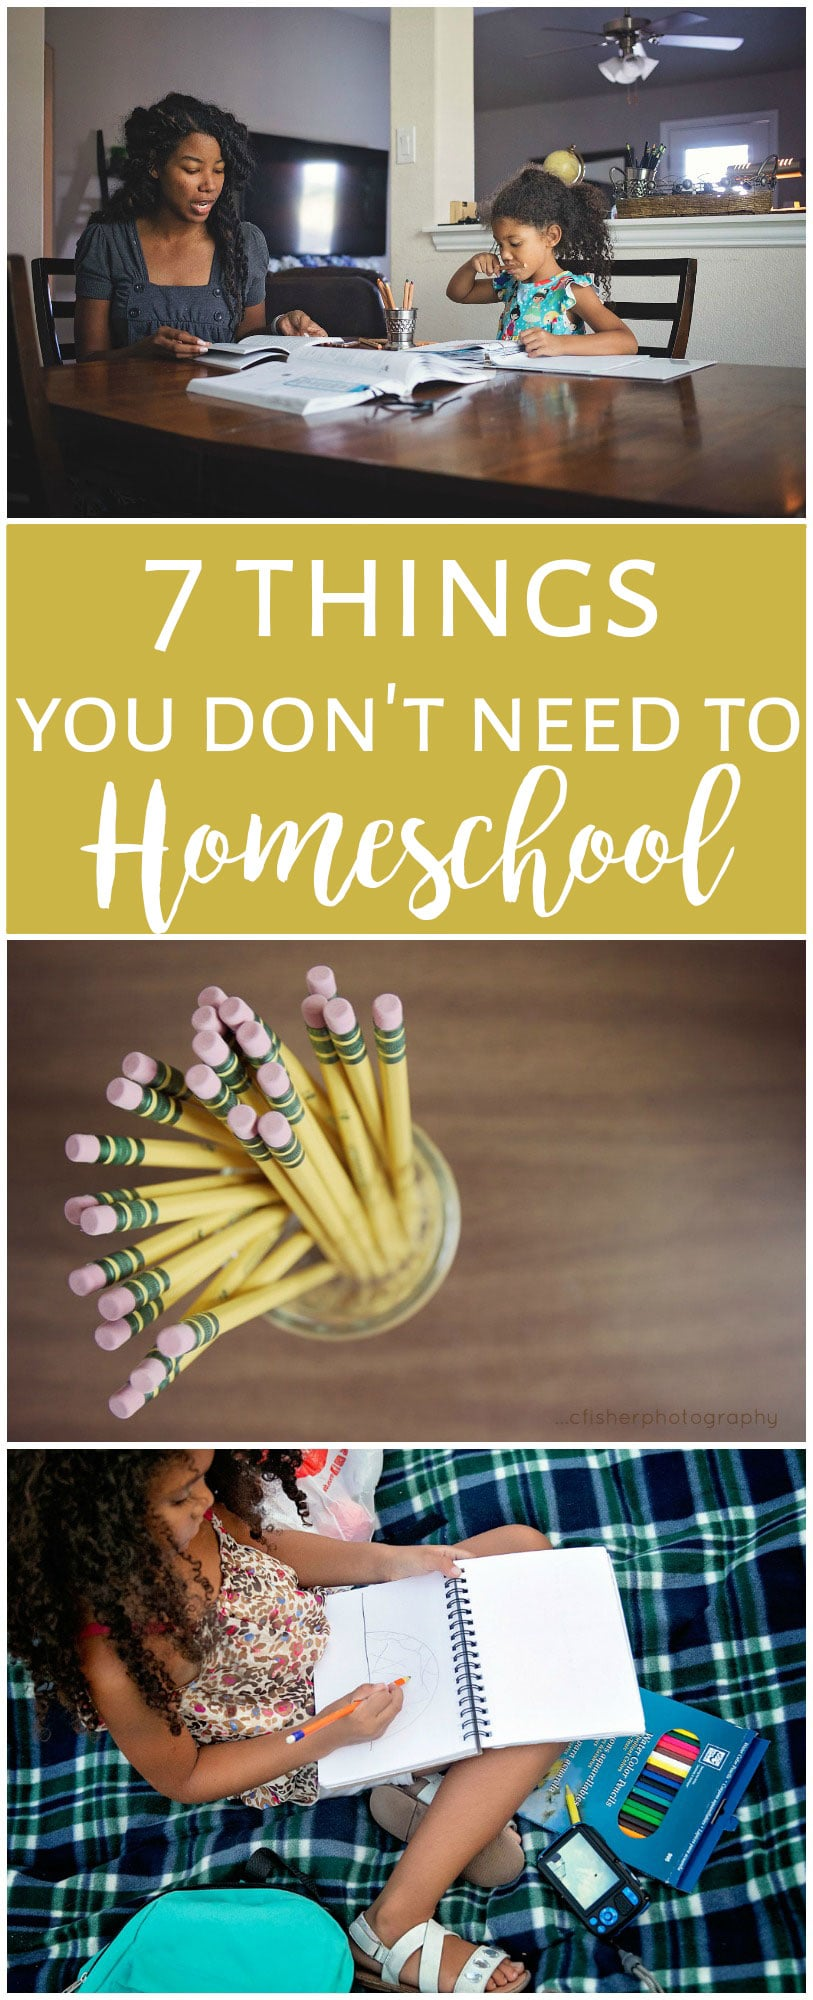 7 things you don't need to homeschool your kids.